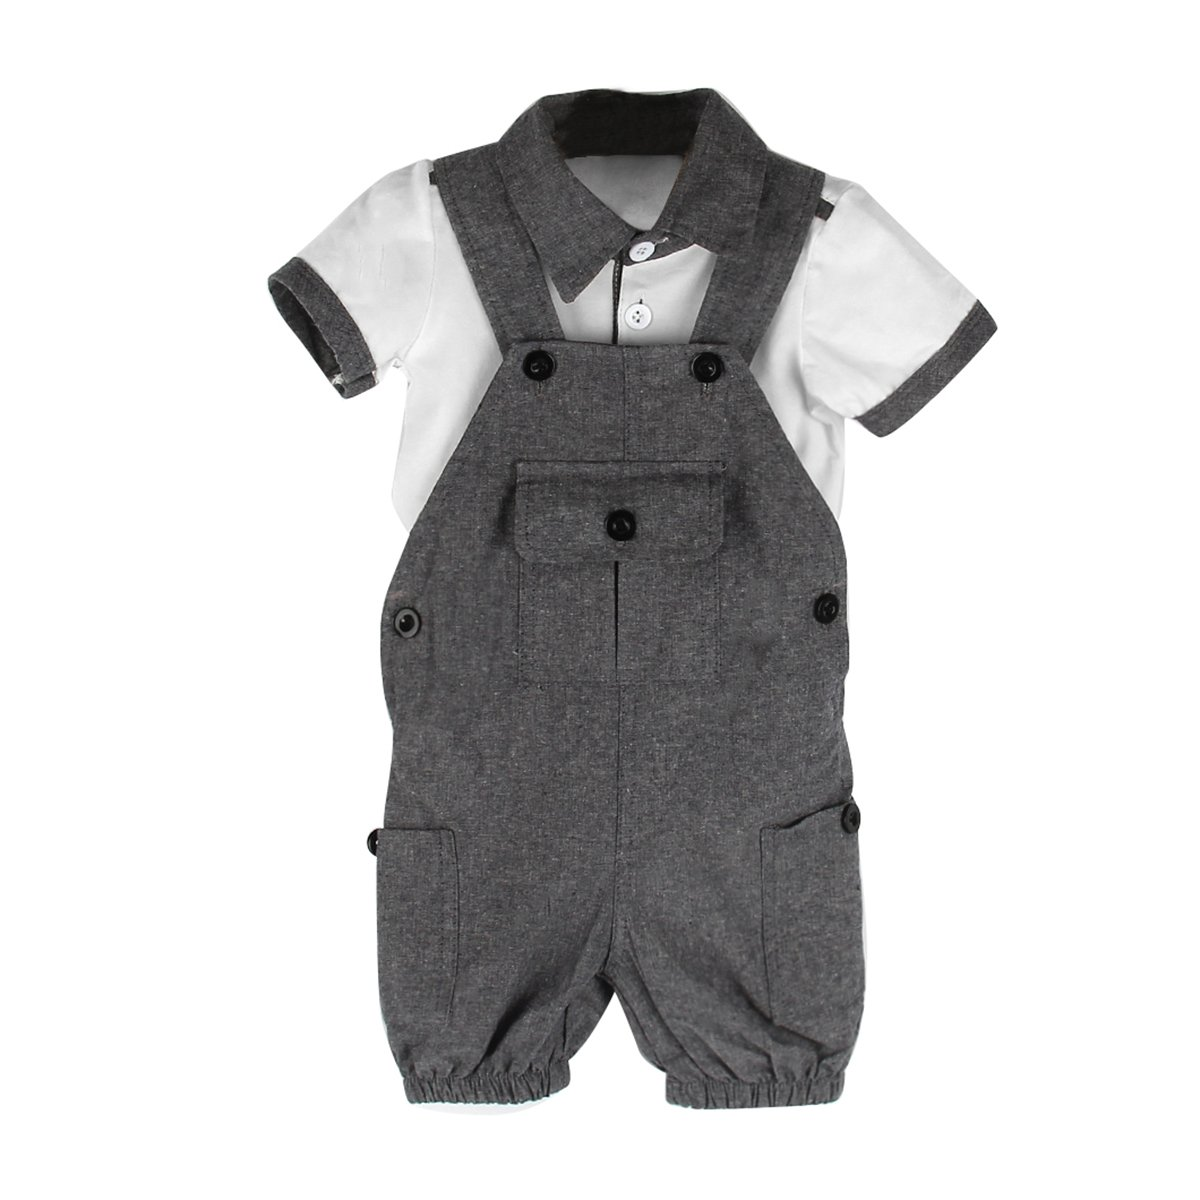 Puseky Baby Boy Gril Short Sleeve Shirt+ Suspender Trousers Overalls Clothes Set (18-24 Months, Grey+White)